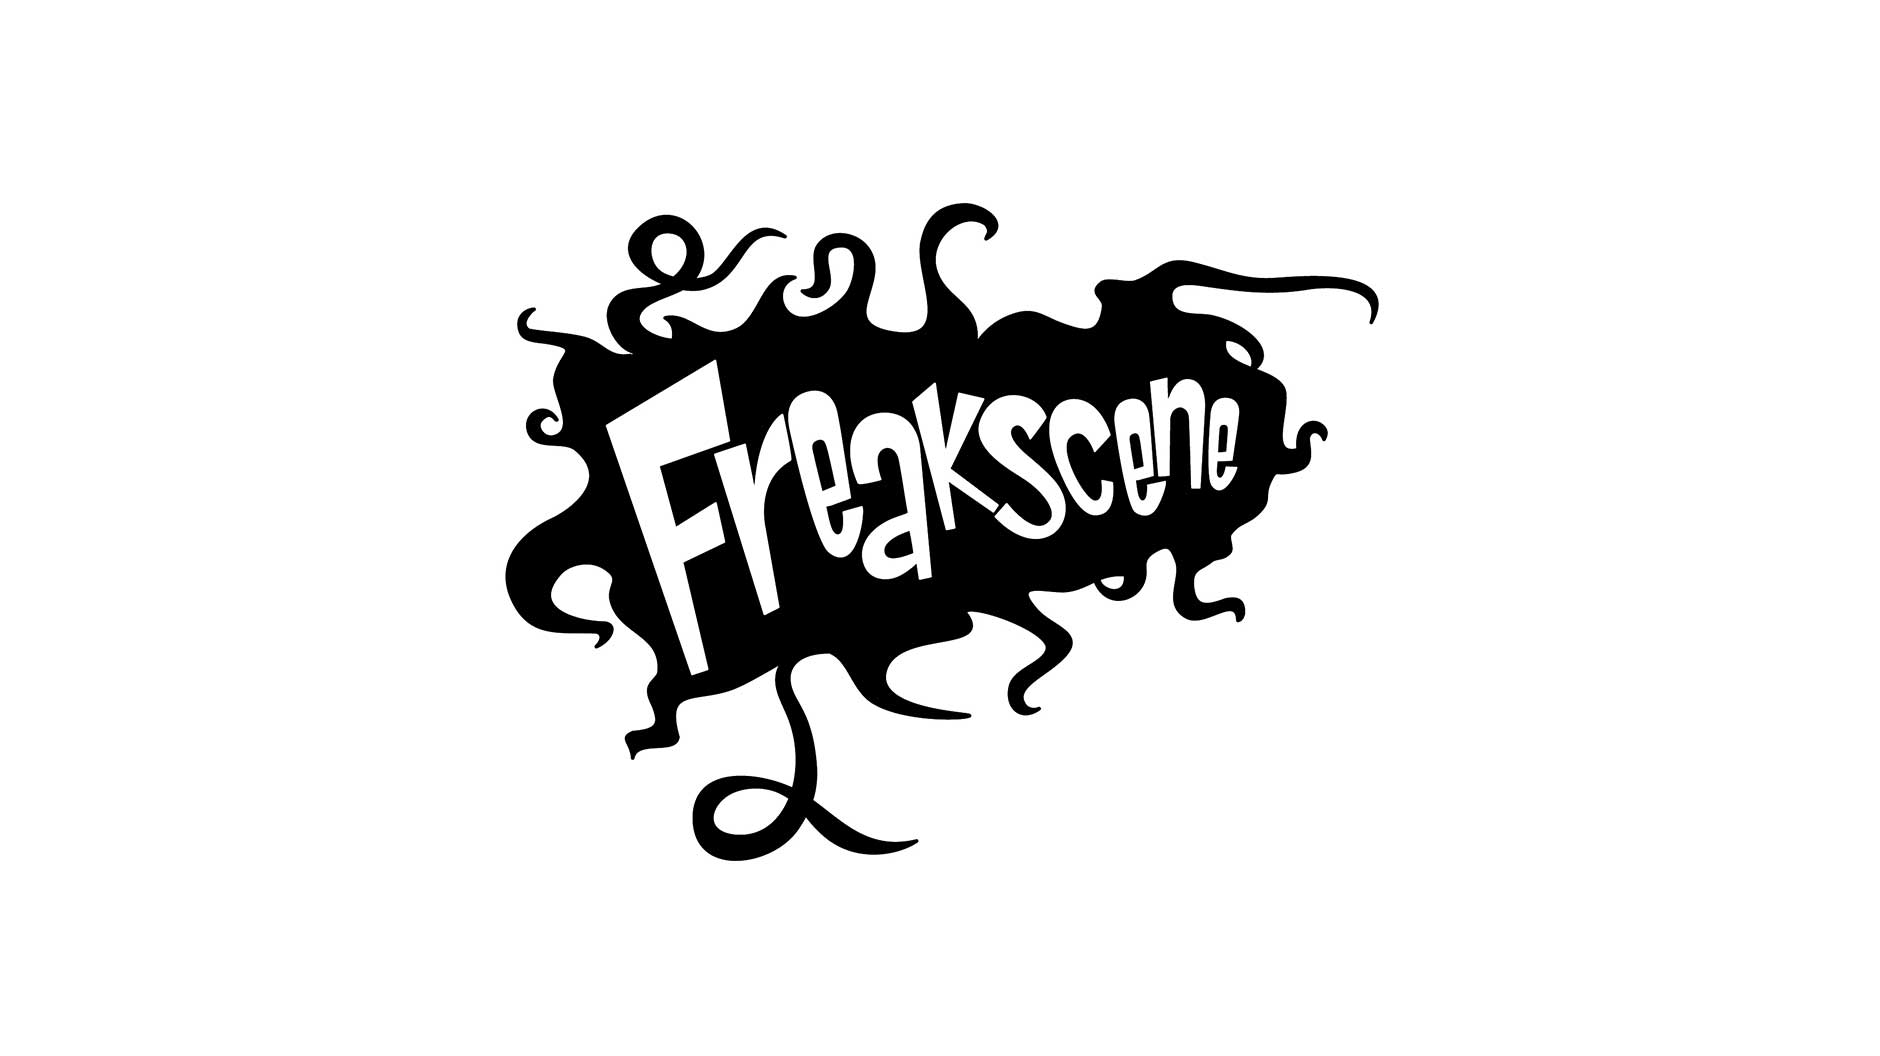 Freakscene logo design